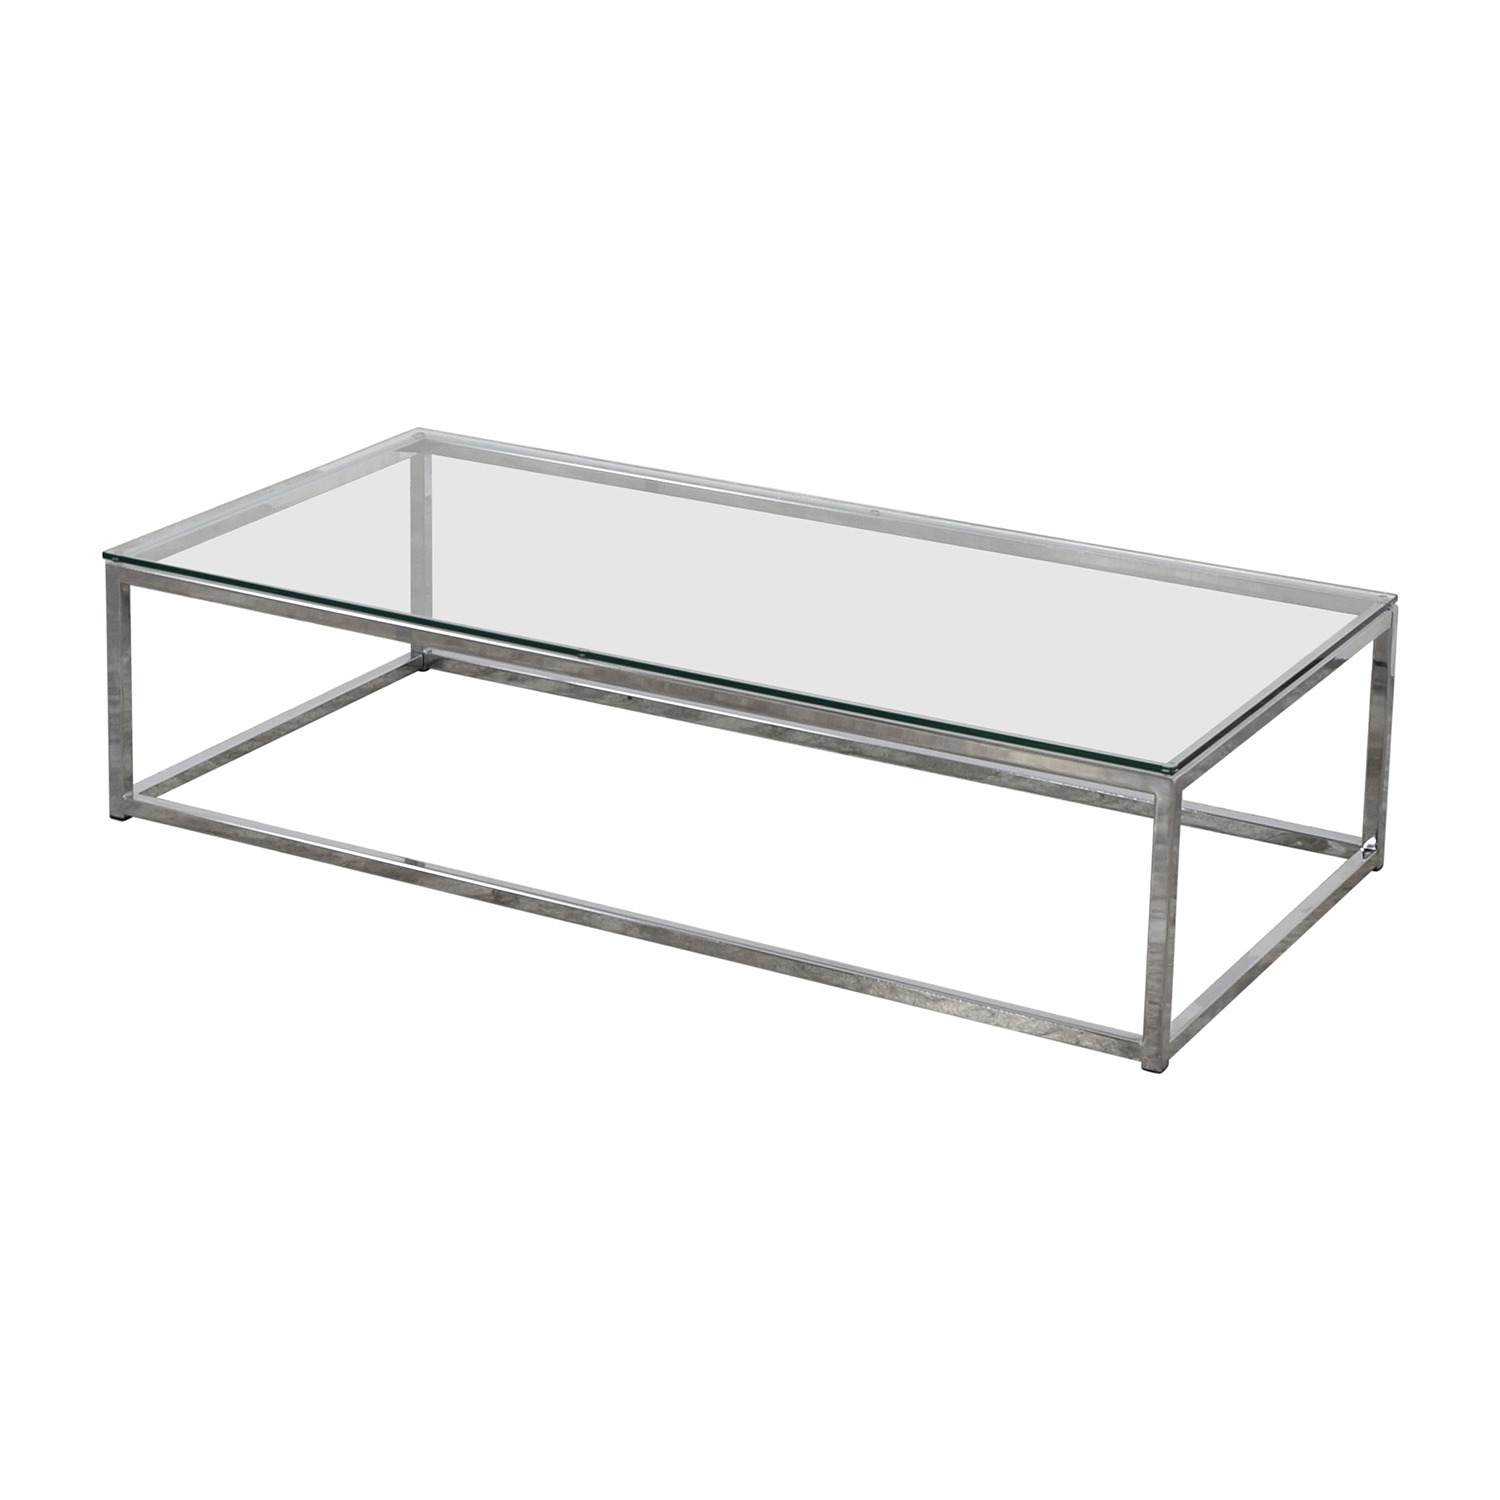 CB2 Glass and Chrome Coffee Table / Coffee Tables